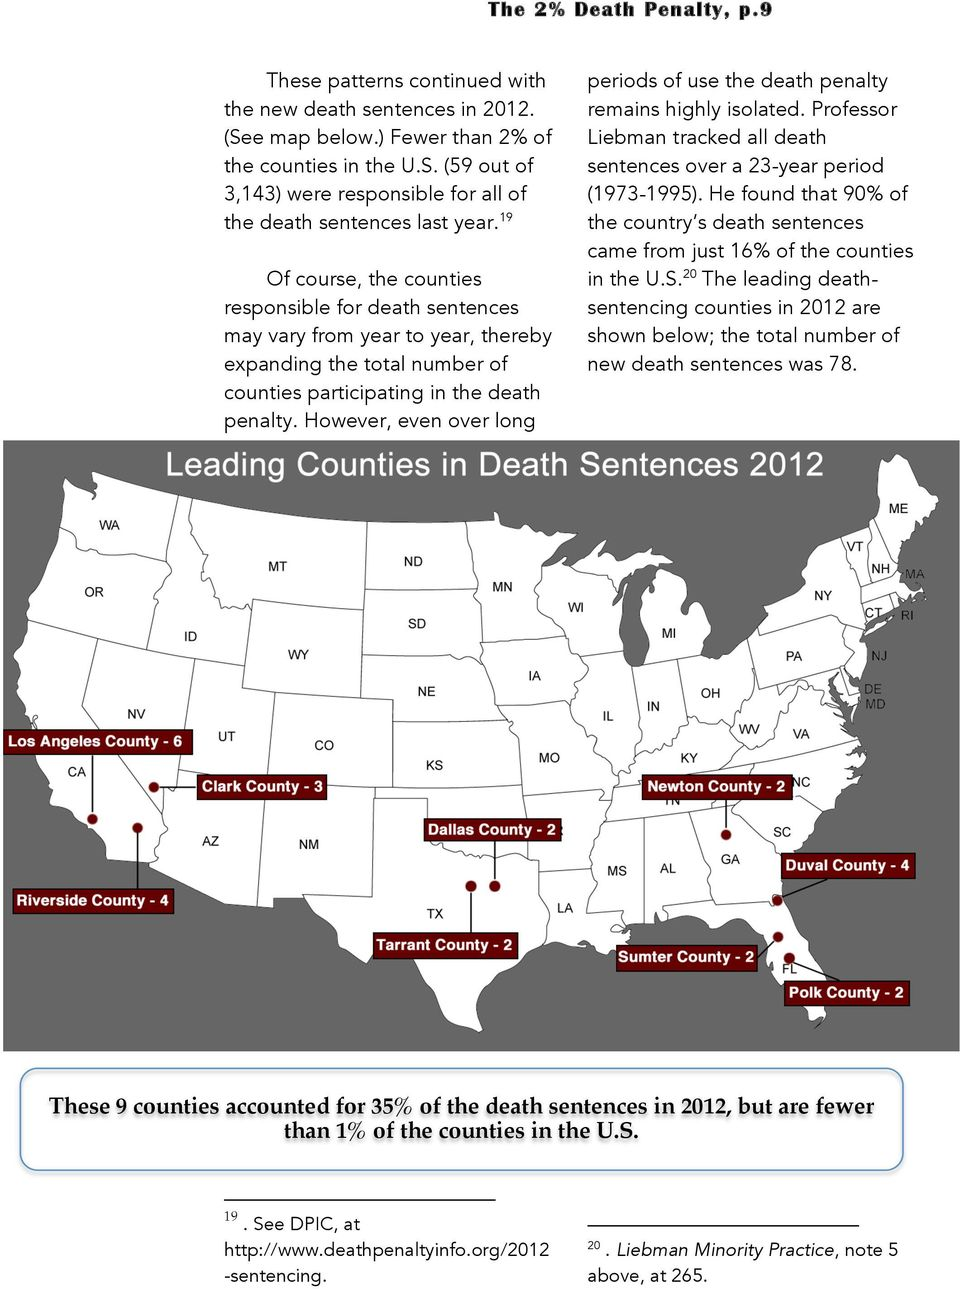 However, even over long periods of use the death penalty remains highly isolated. Professor Liebman tracked all death sentences over a 23-year period (1973-1995).